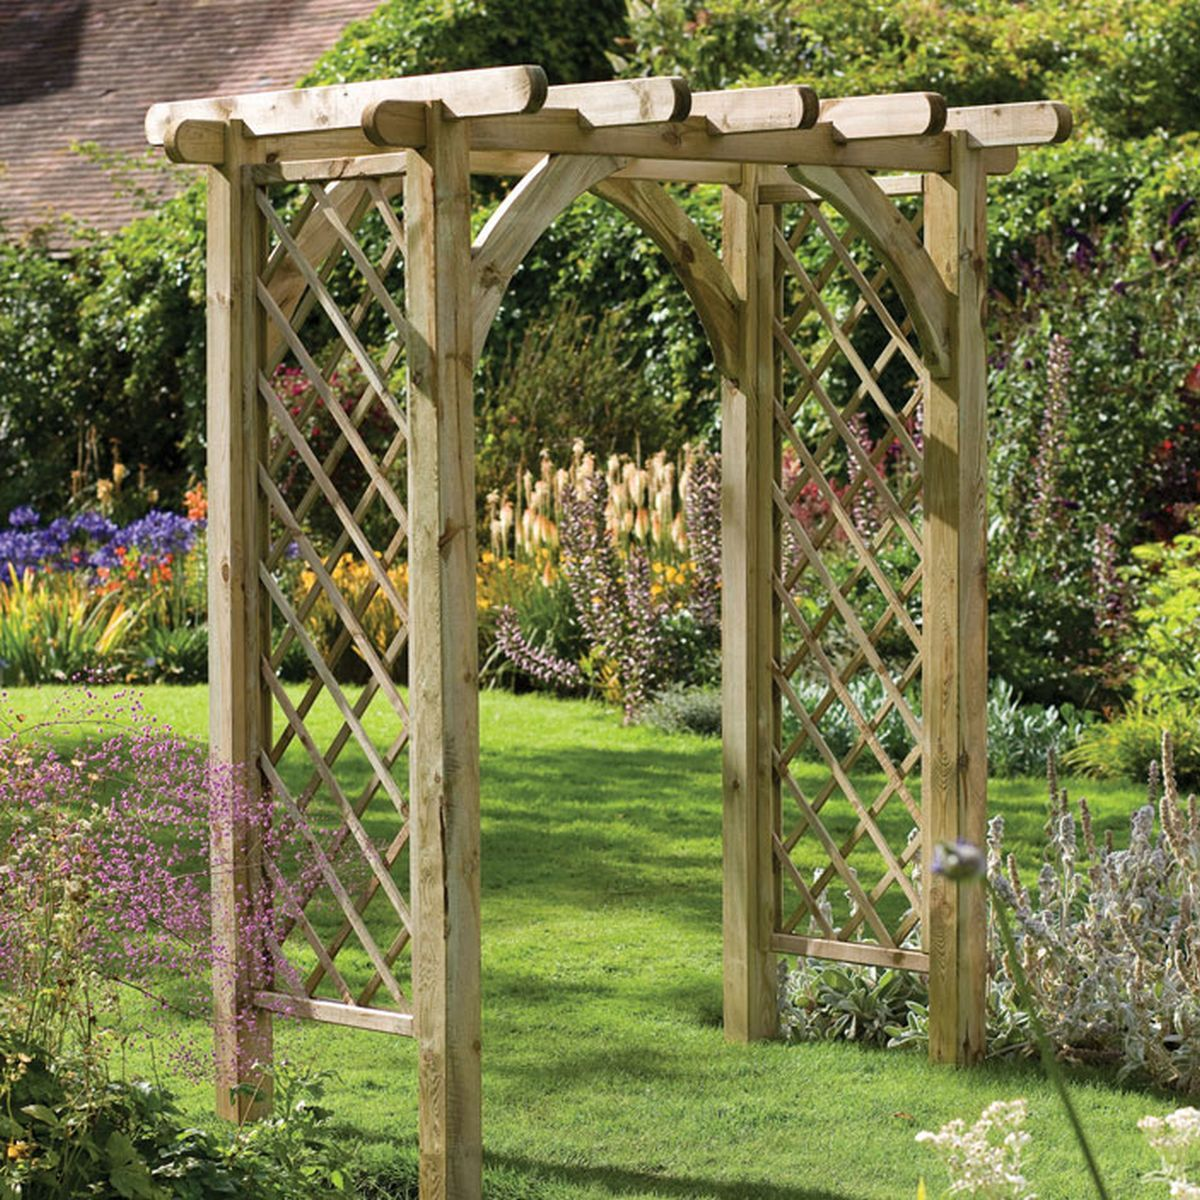 Forest Ultima Garden Pergola Arch With Integrated Trellis, Forest Ultima Garden  Pergola Arch With Inte, Forest Ultima Garden Pergola Arch With Inte